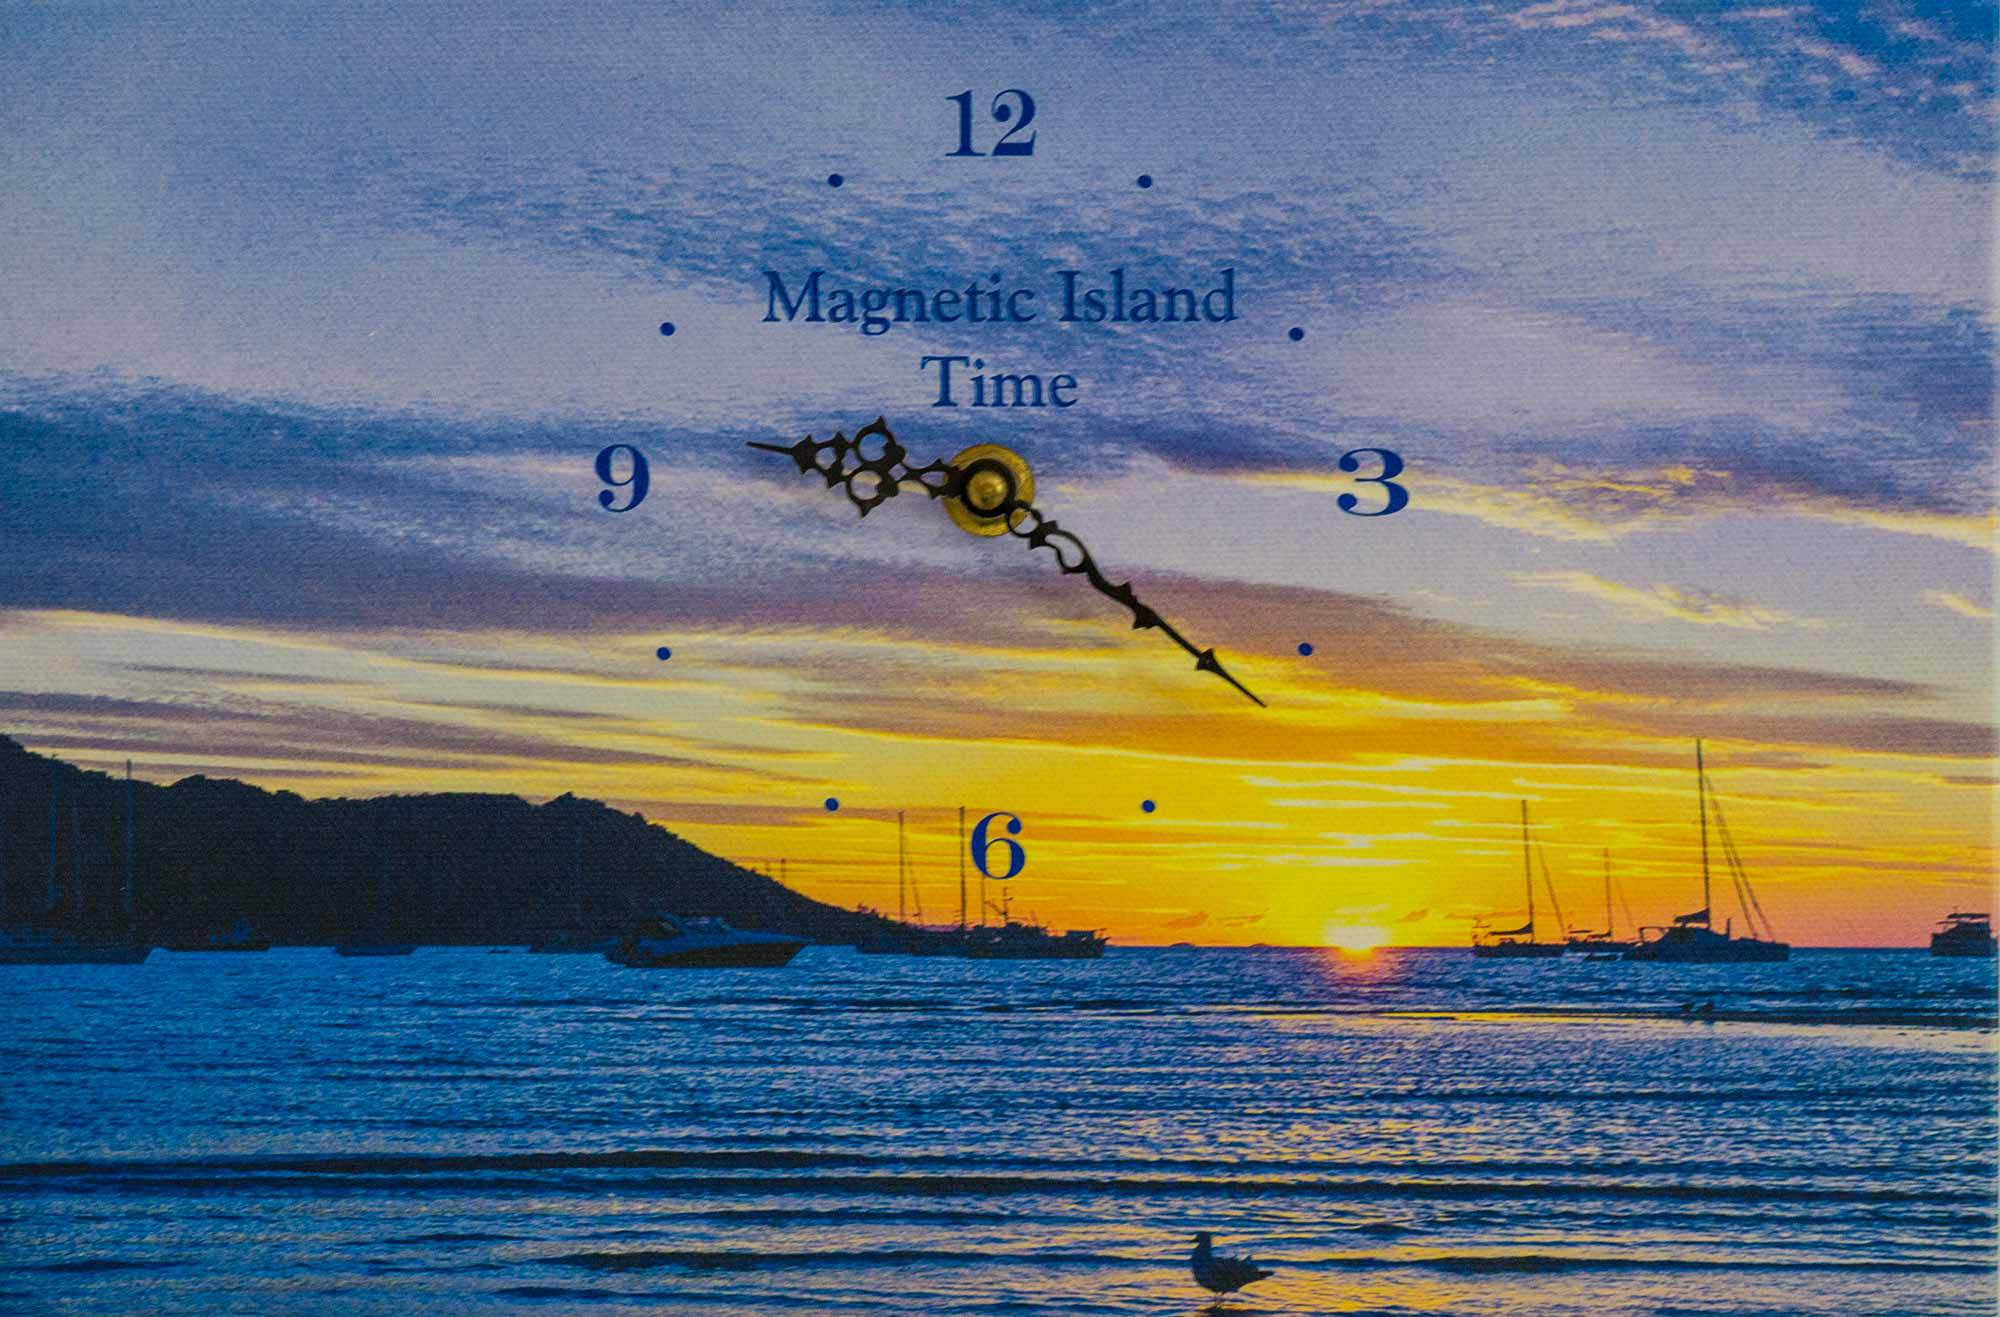 Clock with the background of the sunset